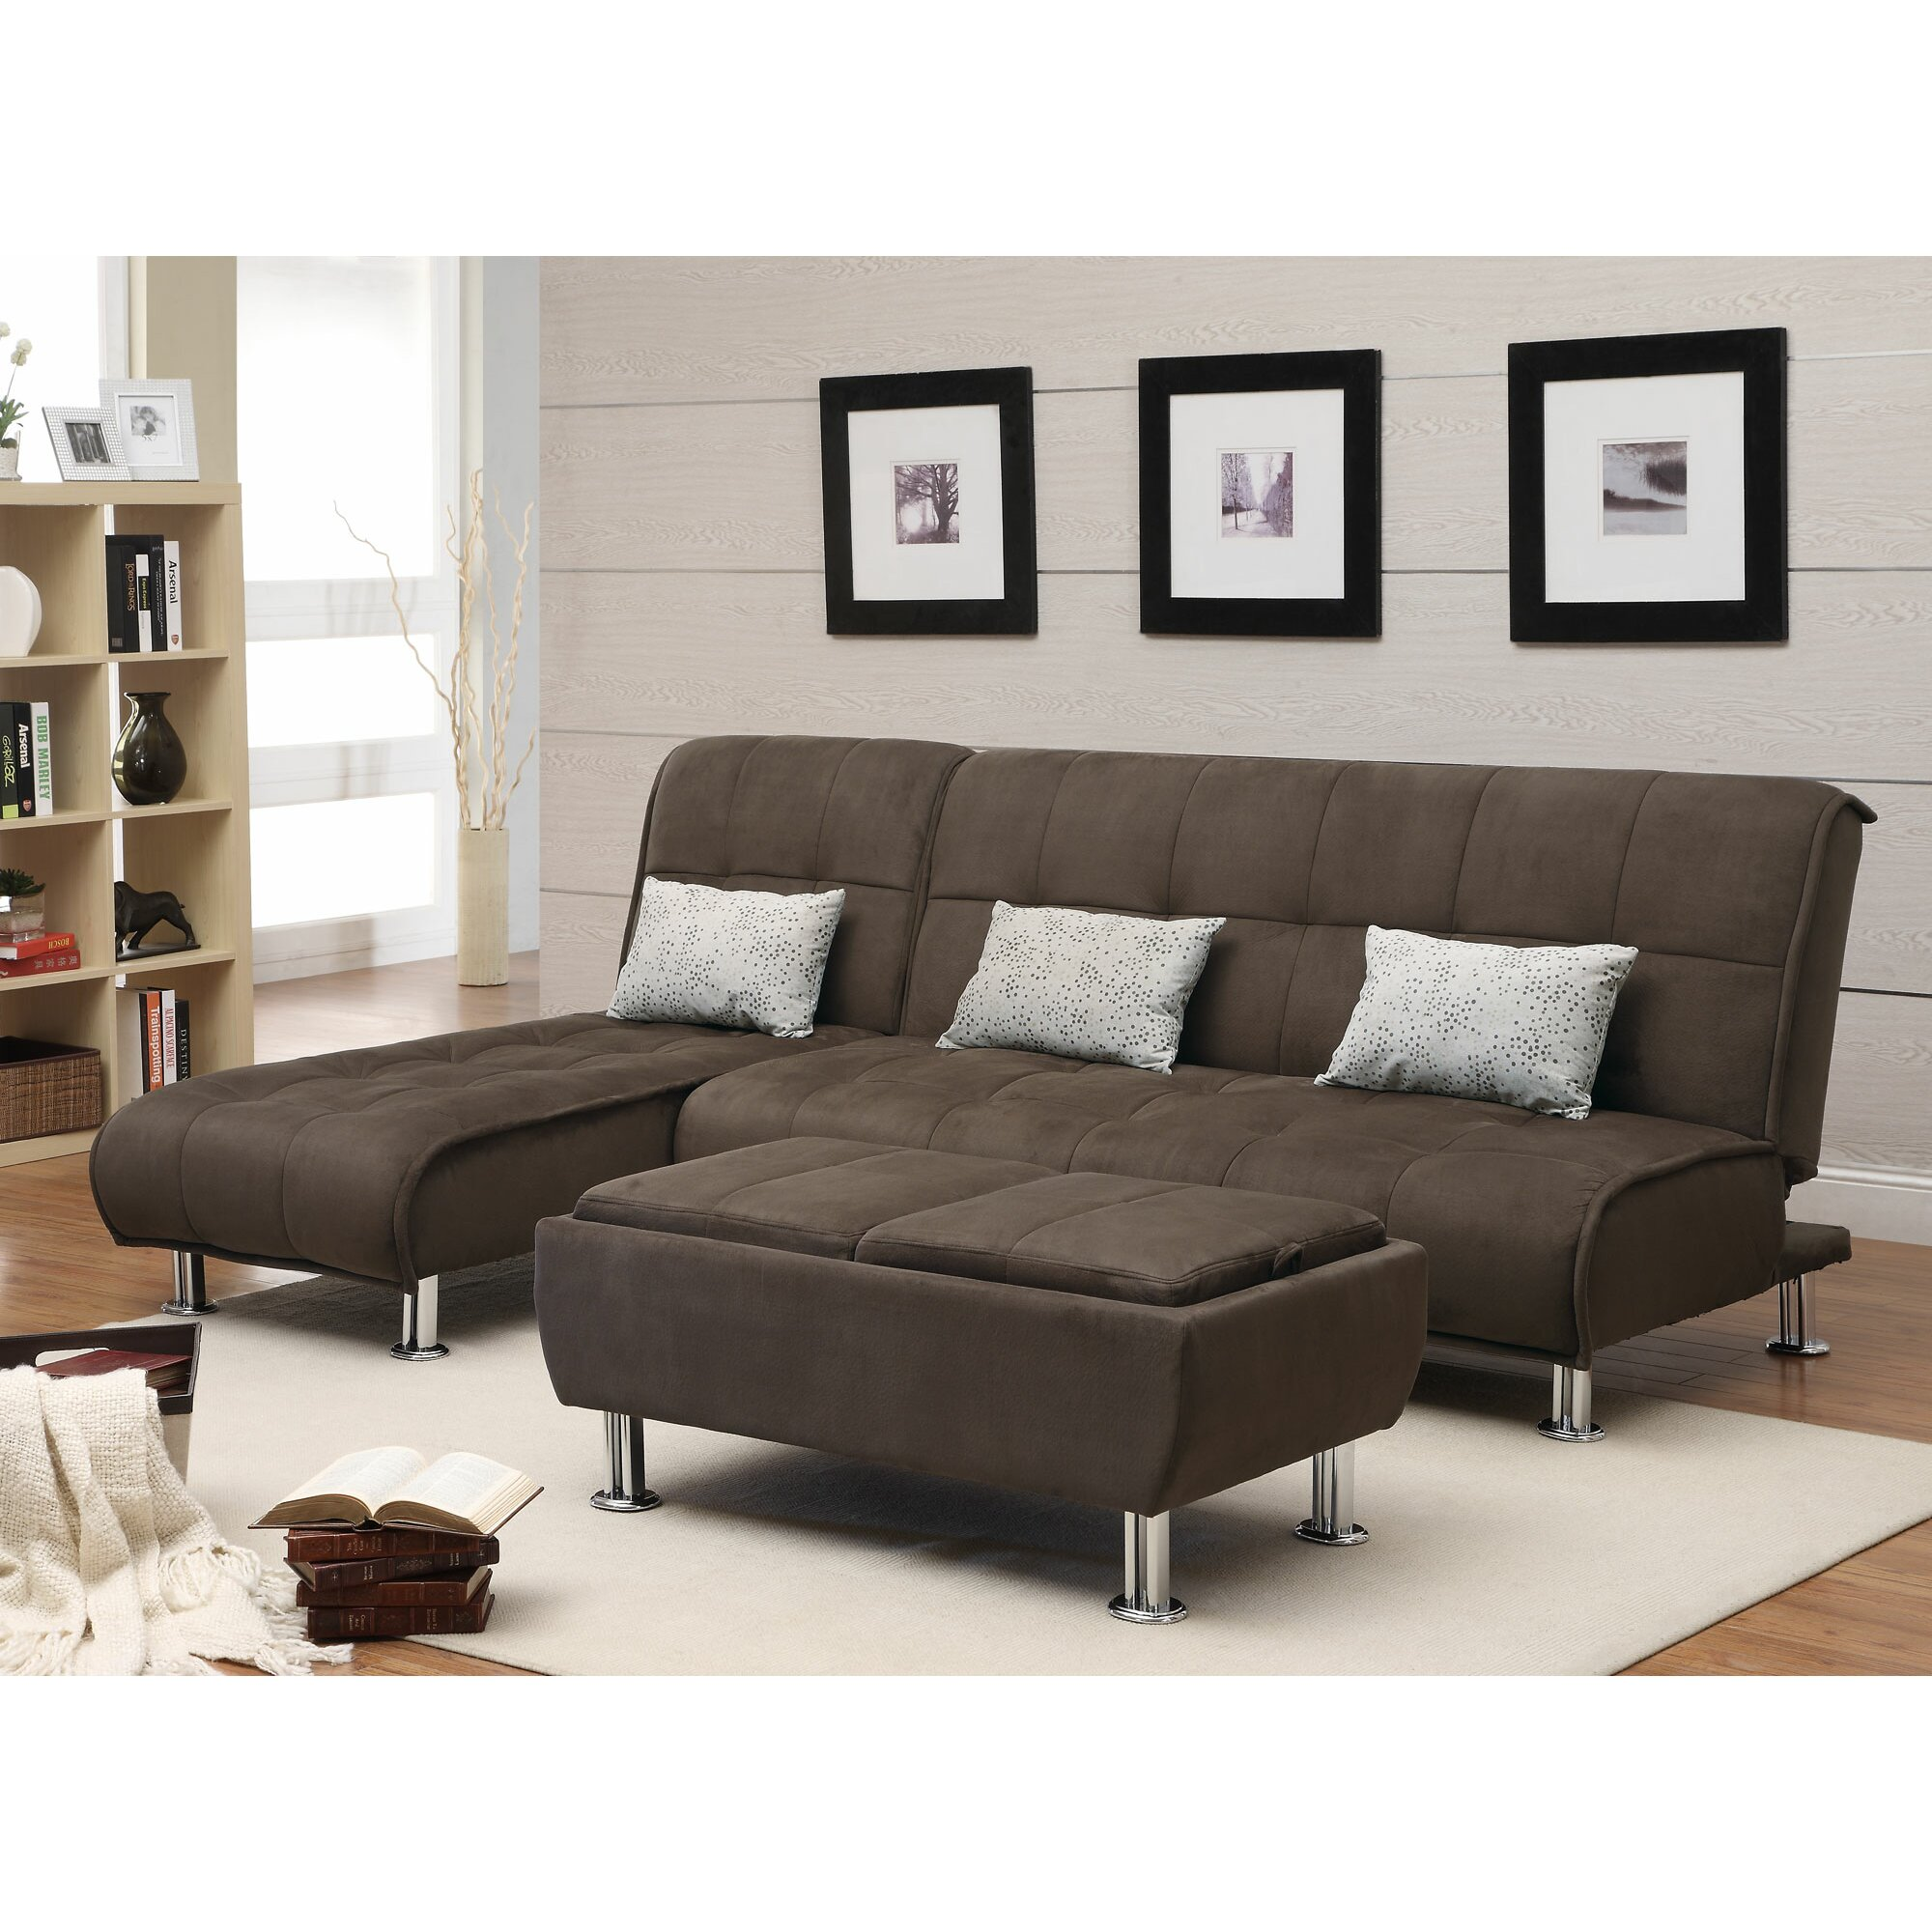 Baby cribs value city furniture - Sleeper Sofa Living Room Collection